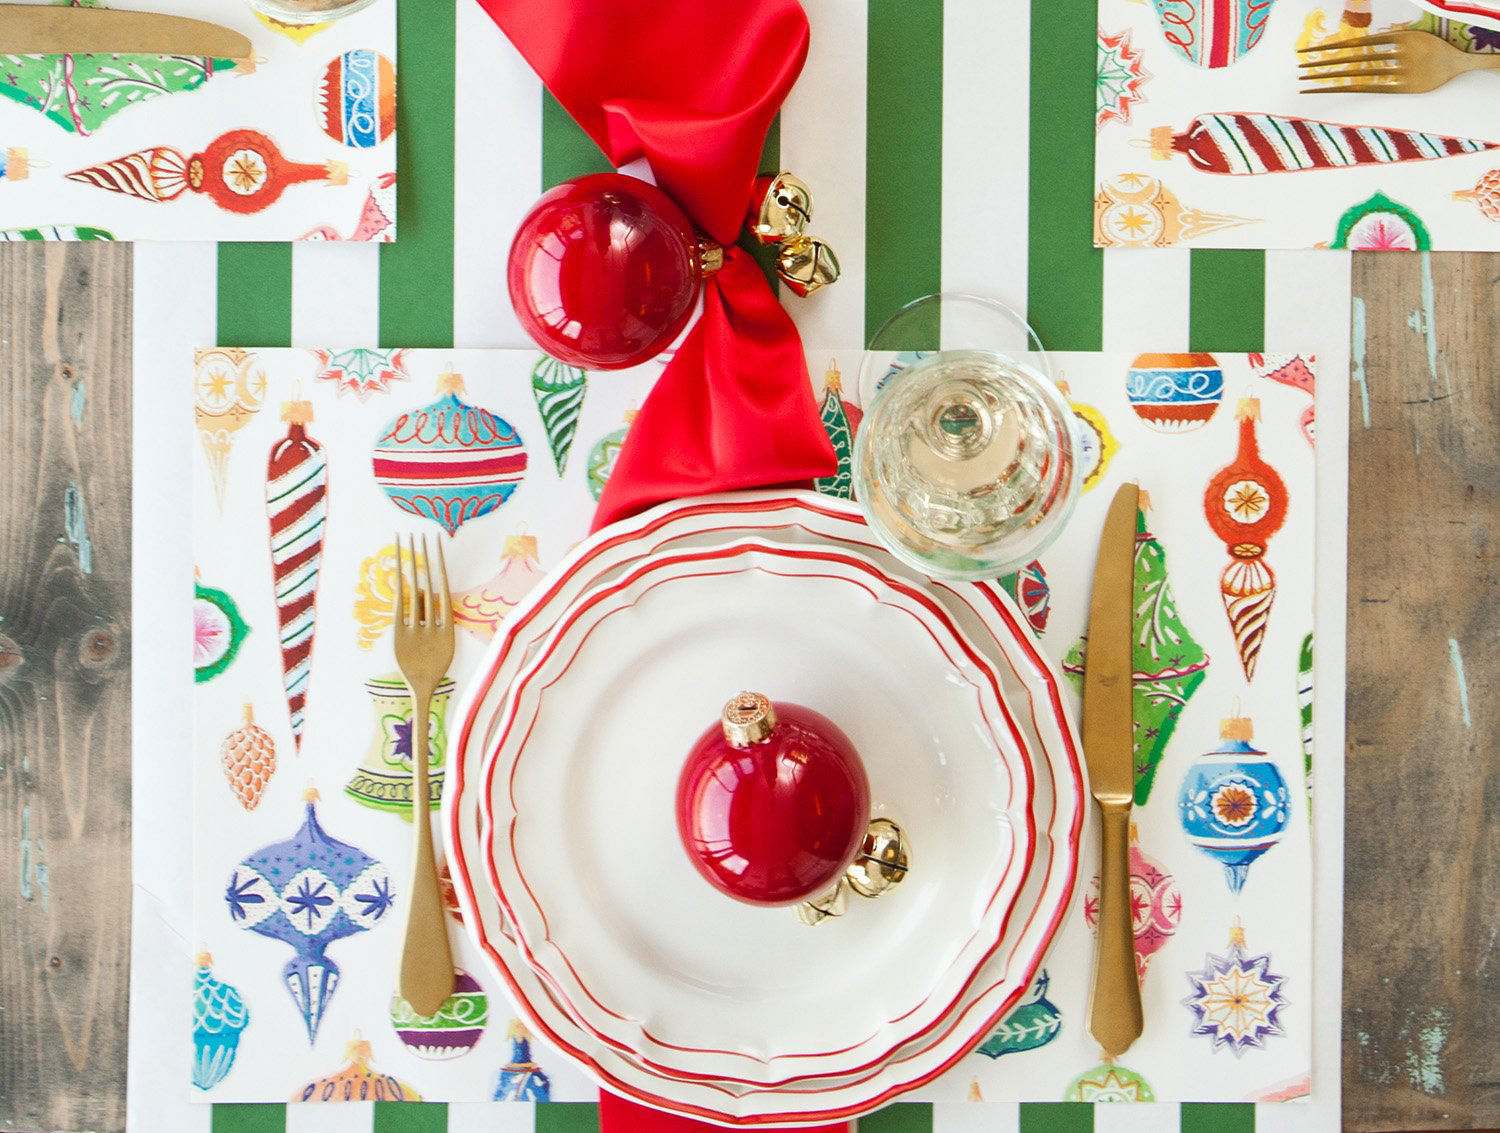 Ornaments Placemat by Hester & Cook